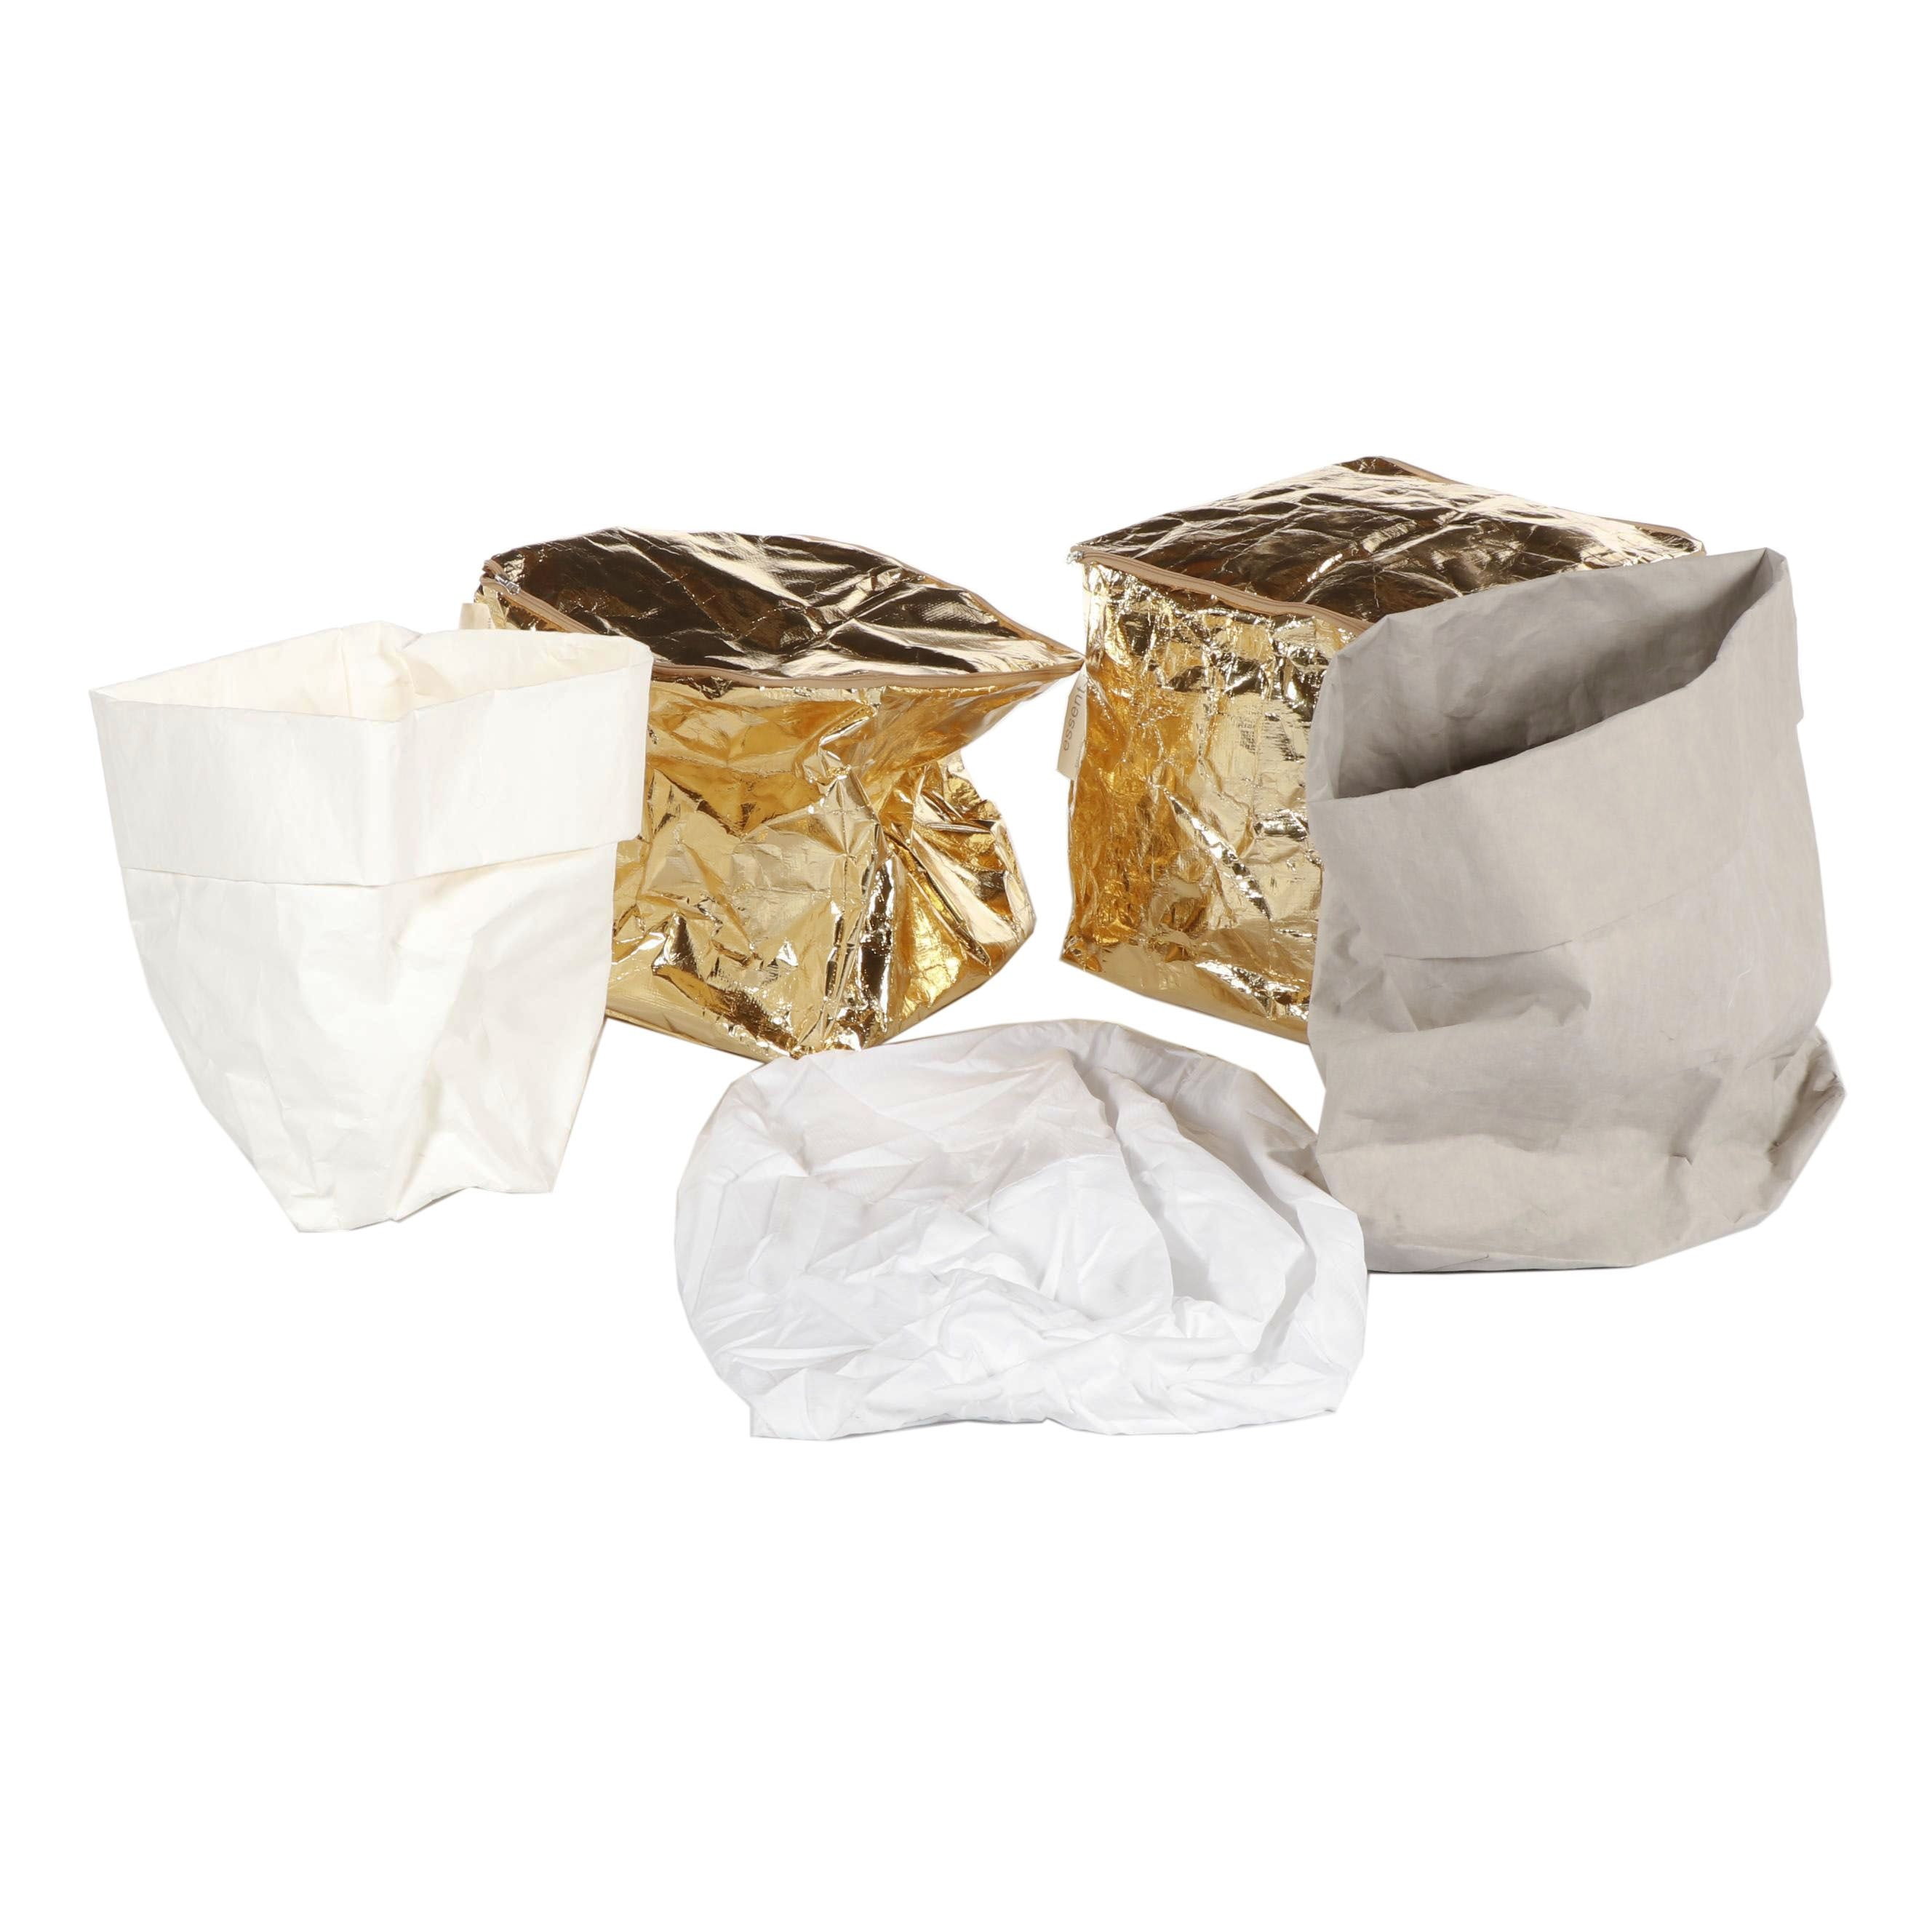 Essent'ial Golden Foil Eco Poufs and Saccone Keeper Sacks, 21st Century